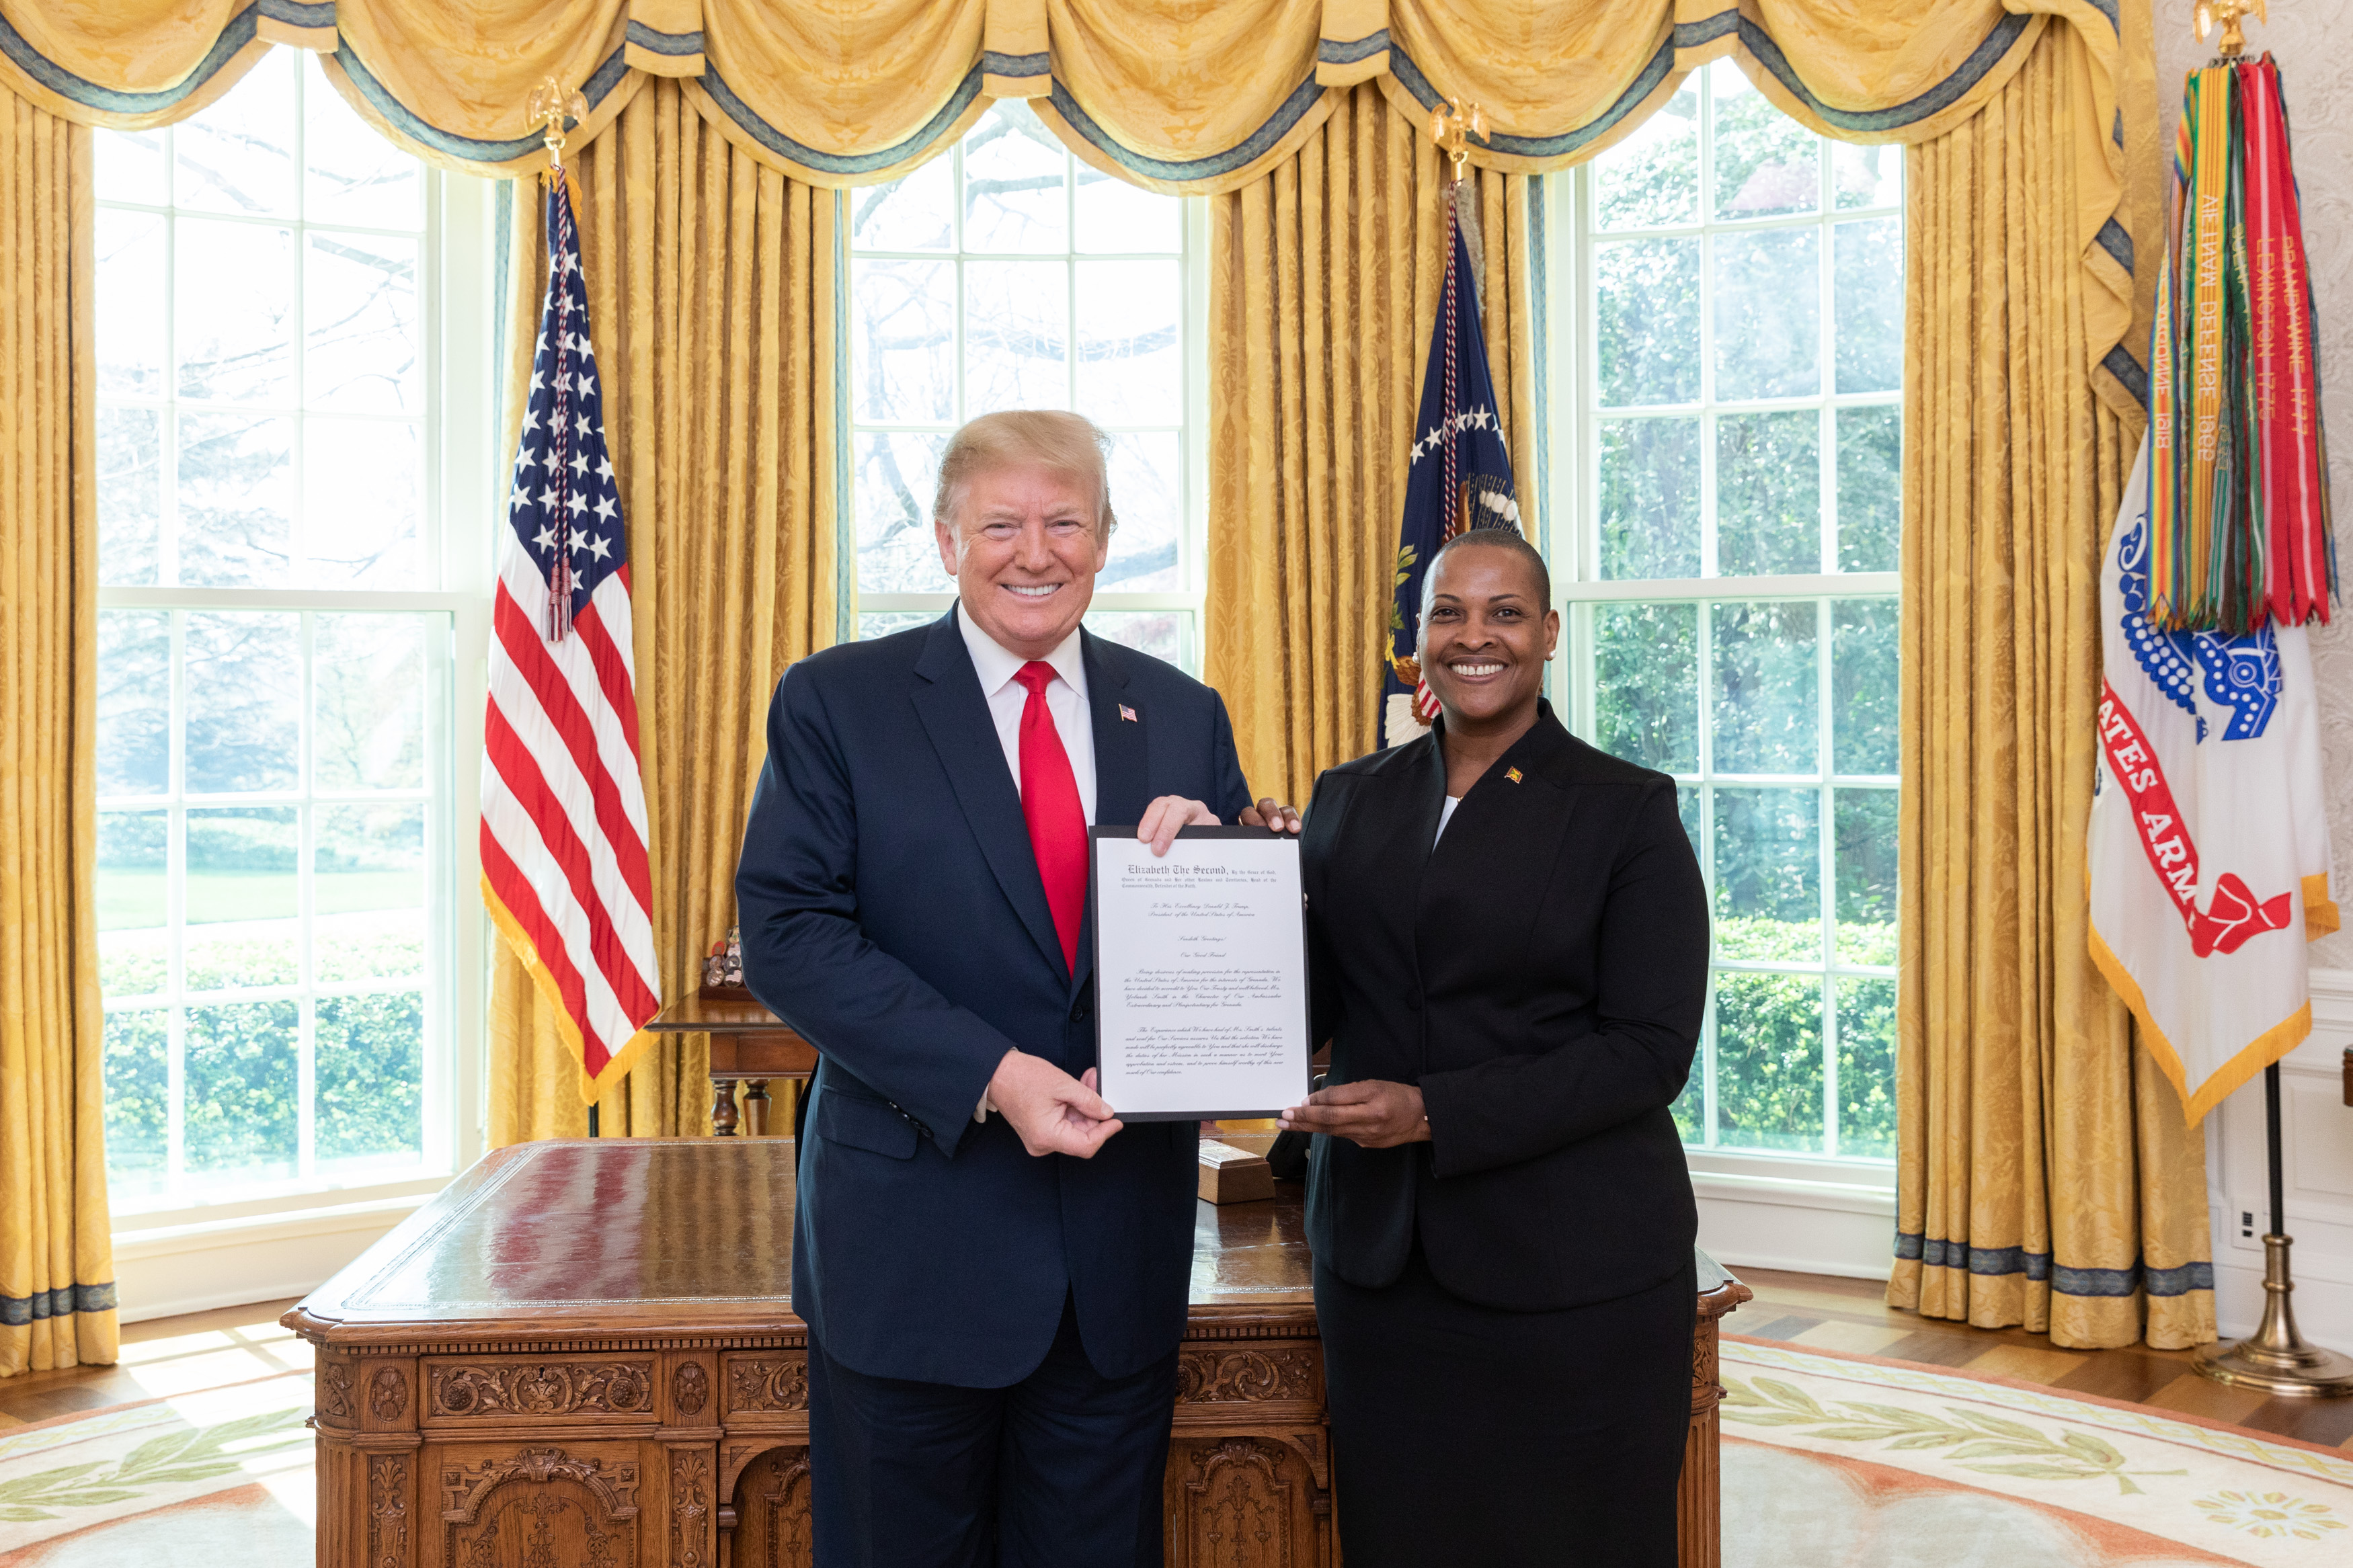 Grenada's Ambassador to the United States, Ms. Yolande Smith this week presented her credentials to U.S. President Donald Trump at the White House last week. Photo courtesy of the Embassy of Grenada.